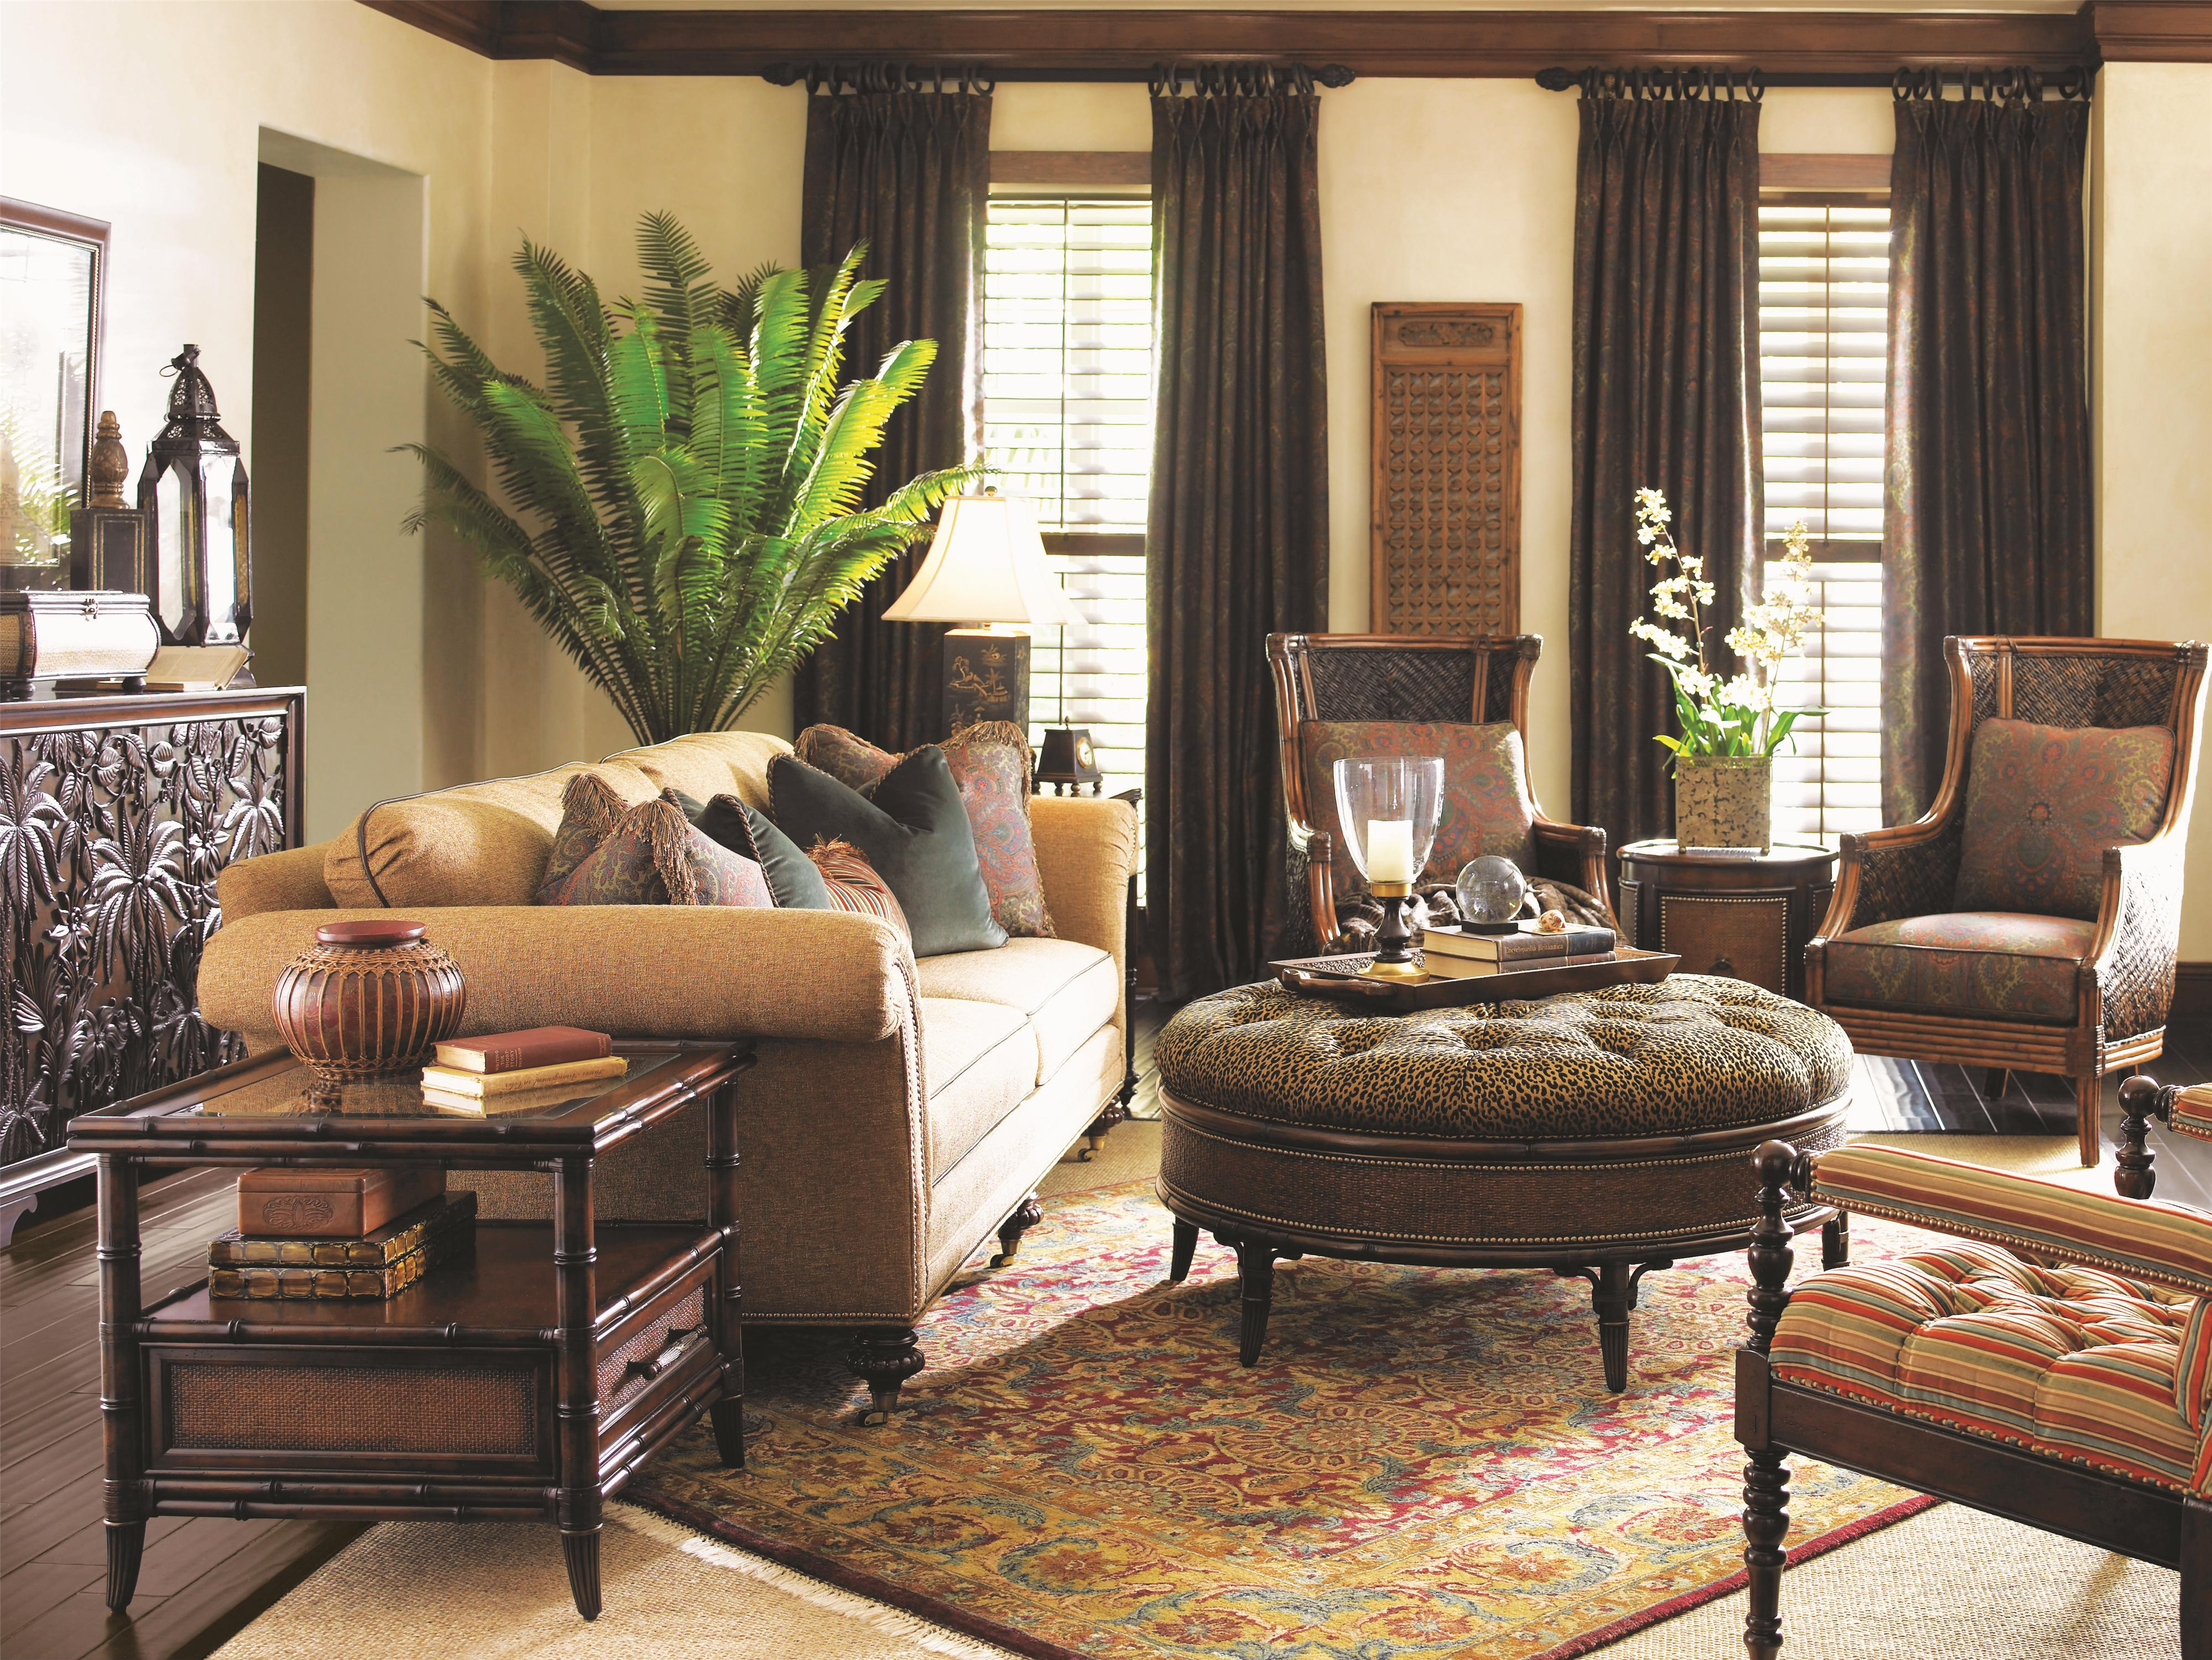 tommy bahama home landara shoal creek sofa with turned legs and nailhead border belfort furniture sofas - Tommy Bahama Bedroom Decorating Ideas